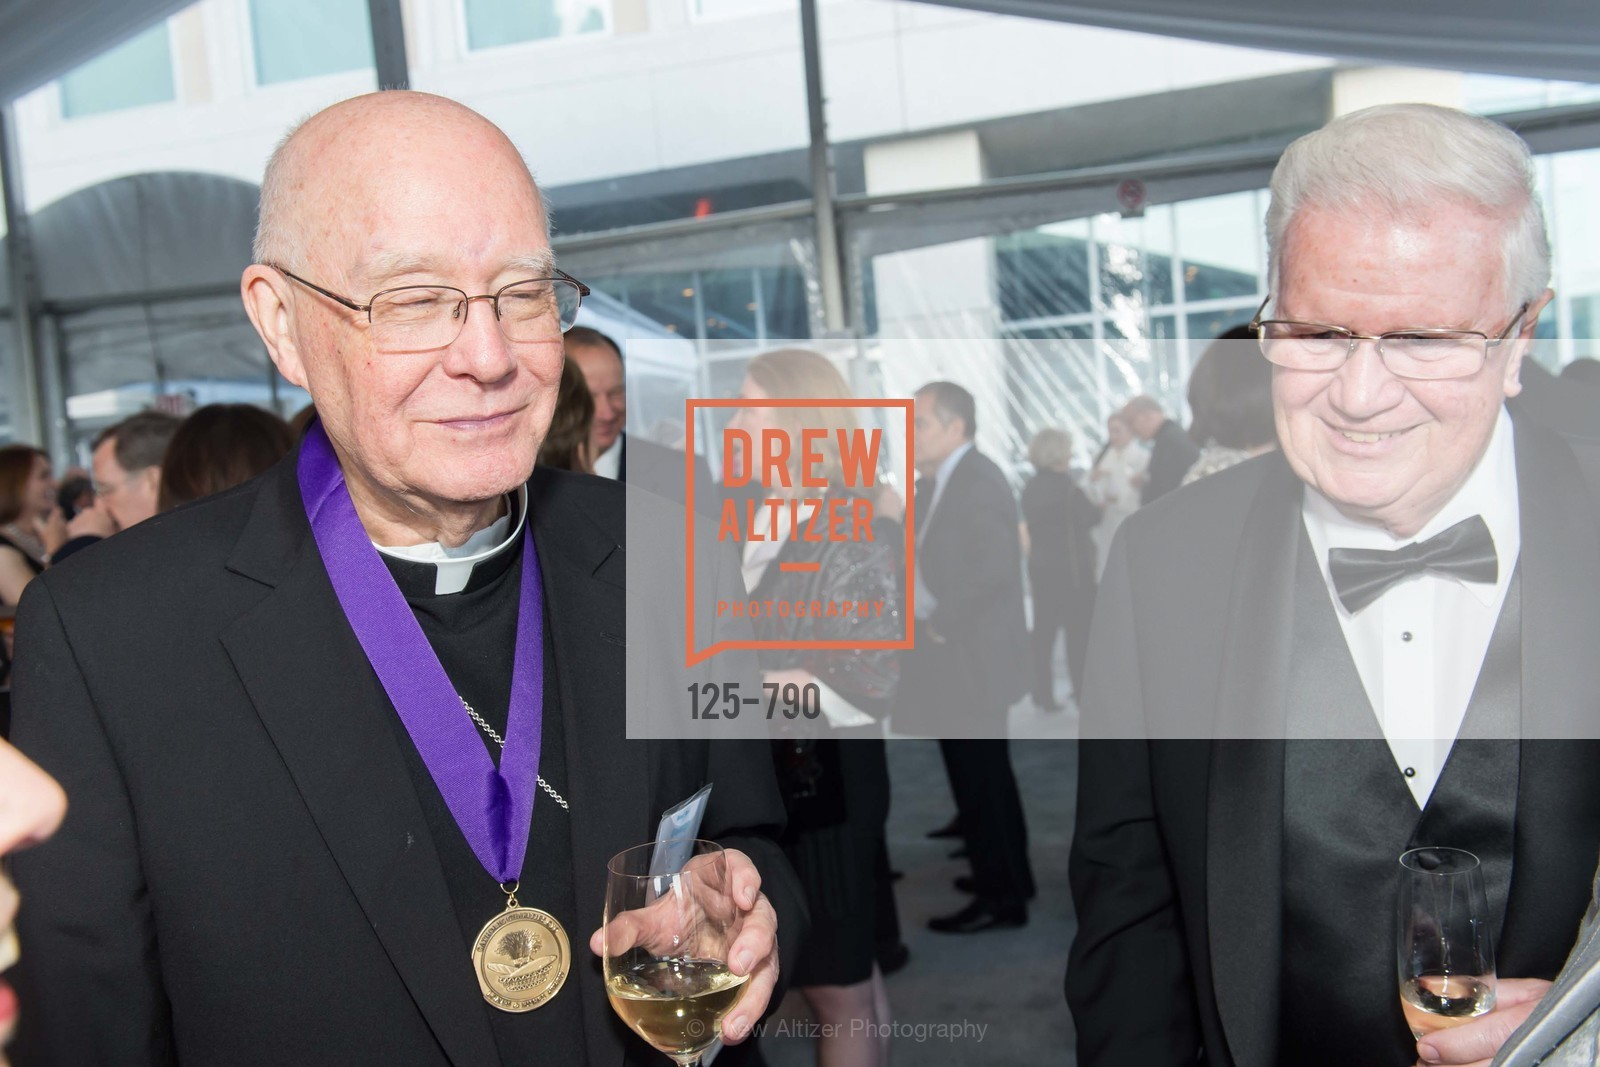 Father George Nieberauer, Dave Nazzaro, Post War and Contemporary Preview at HEDGE GALLERY, US, April 15th, 2015,Drew Altizer, Drew Altizer Photography, full-service agency, private events, San Francisco photographer, photographer california